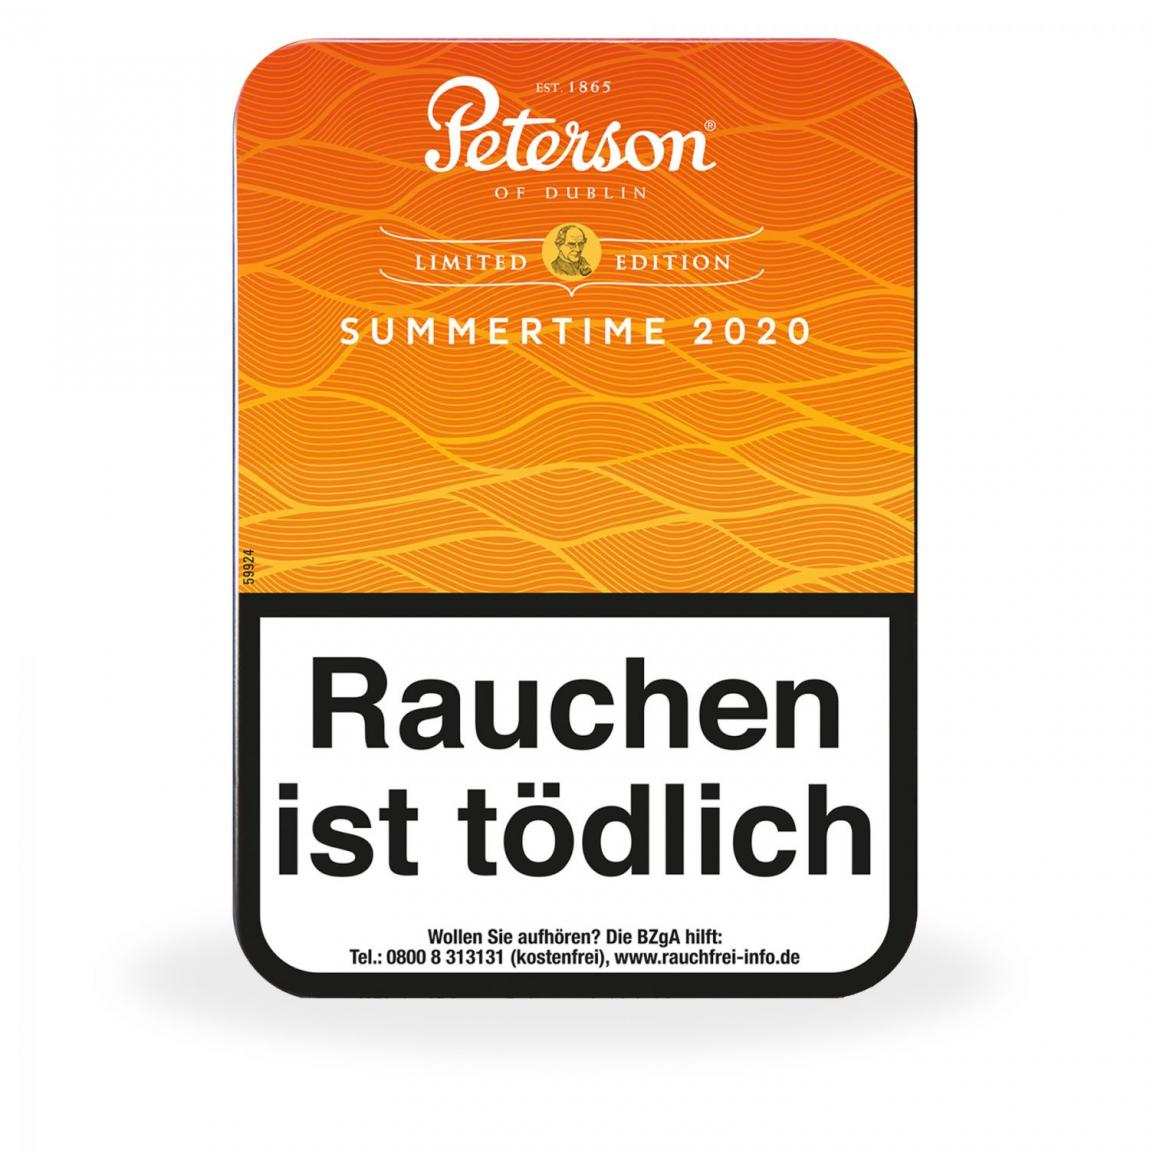 Peterson »Summertime 2020« Limited Edition, 100g Dose